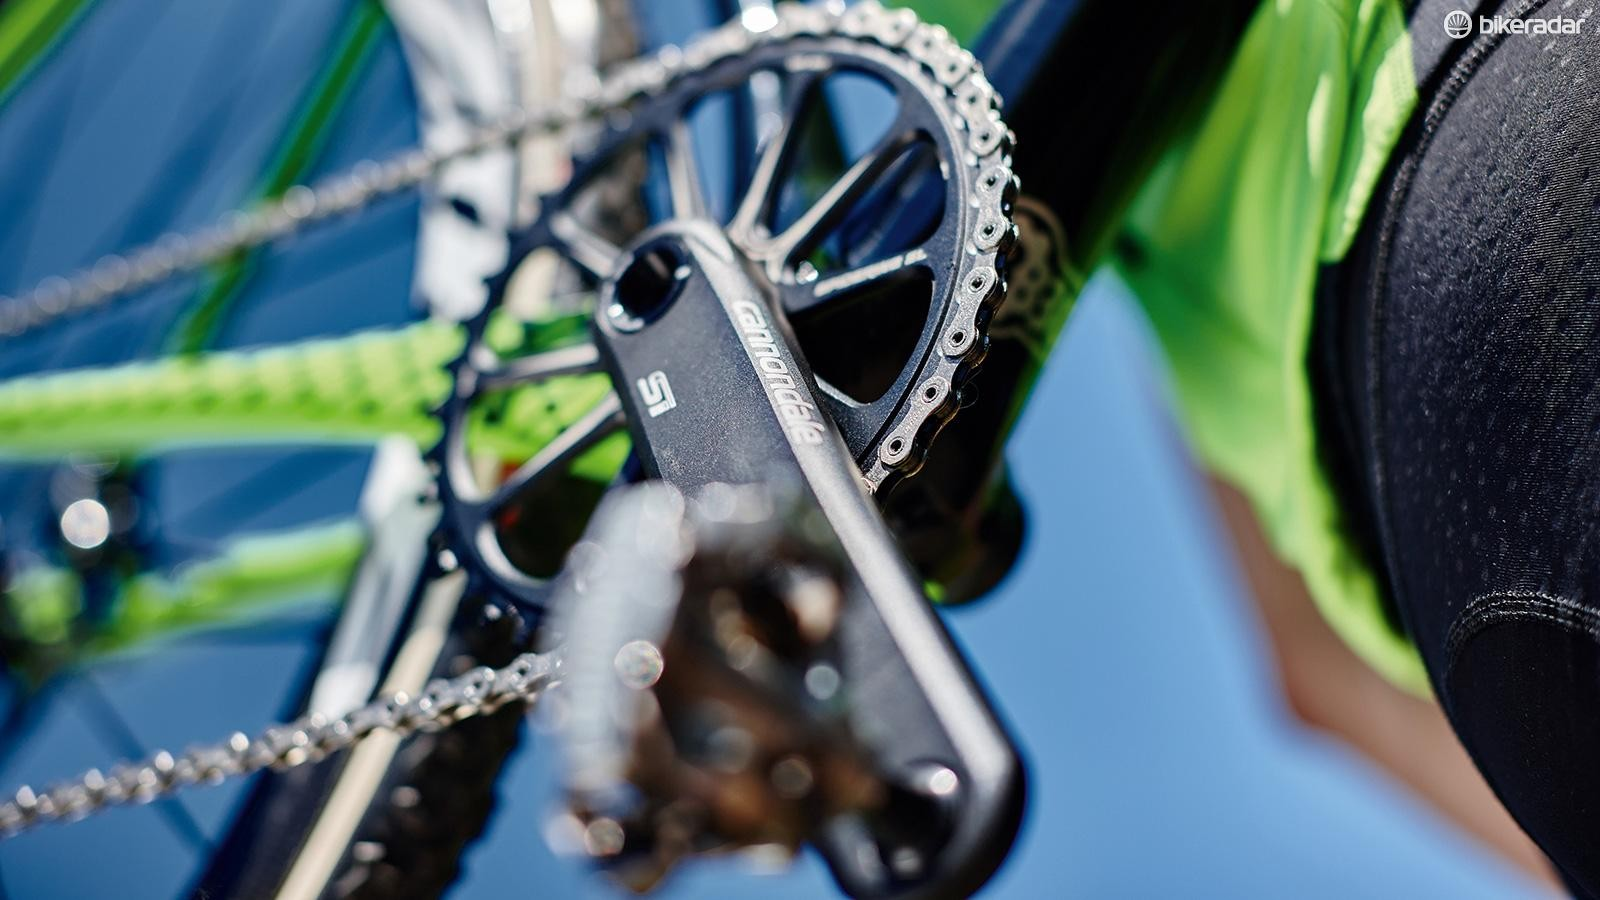 Our bike uses a Cannondale Si crank and SpideRing chainring with SRAM X-Sync wide-narrow tooth profiles